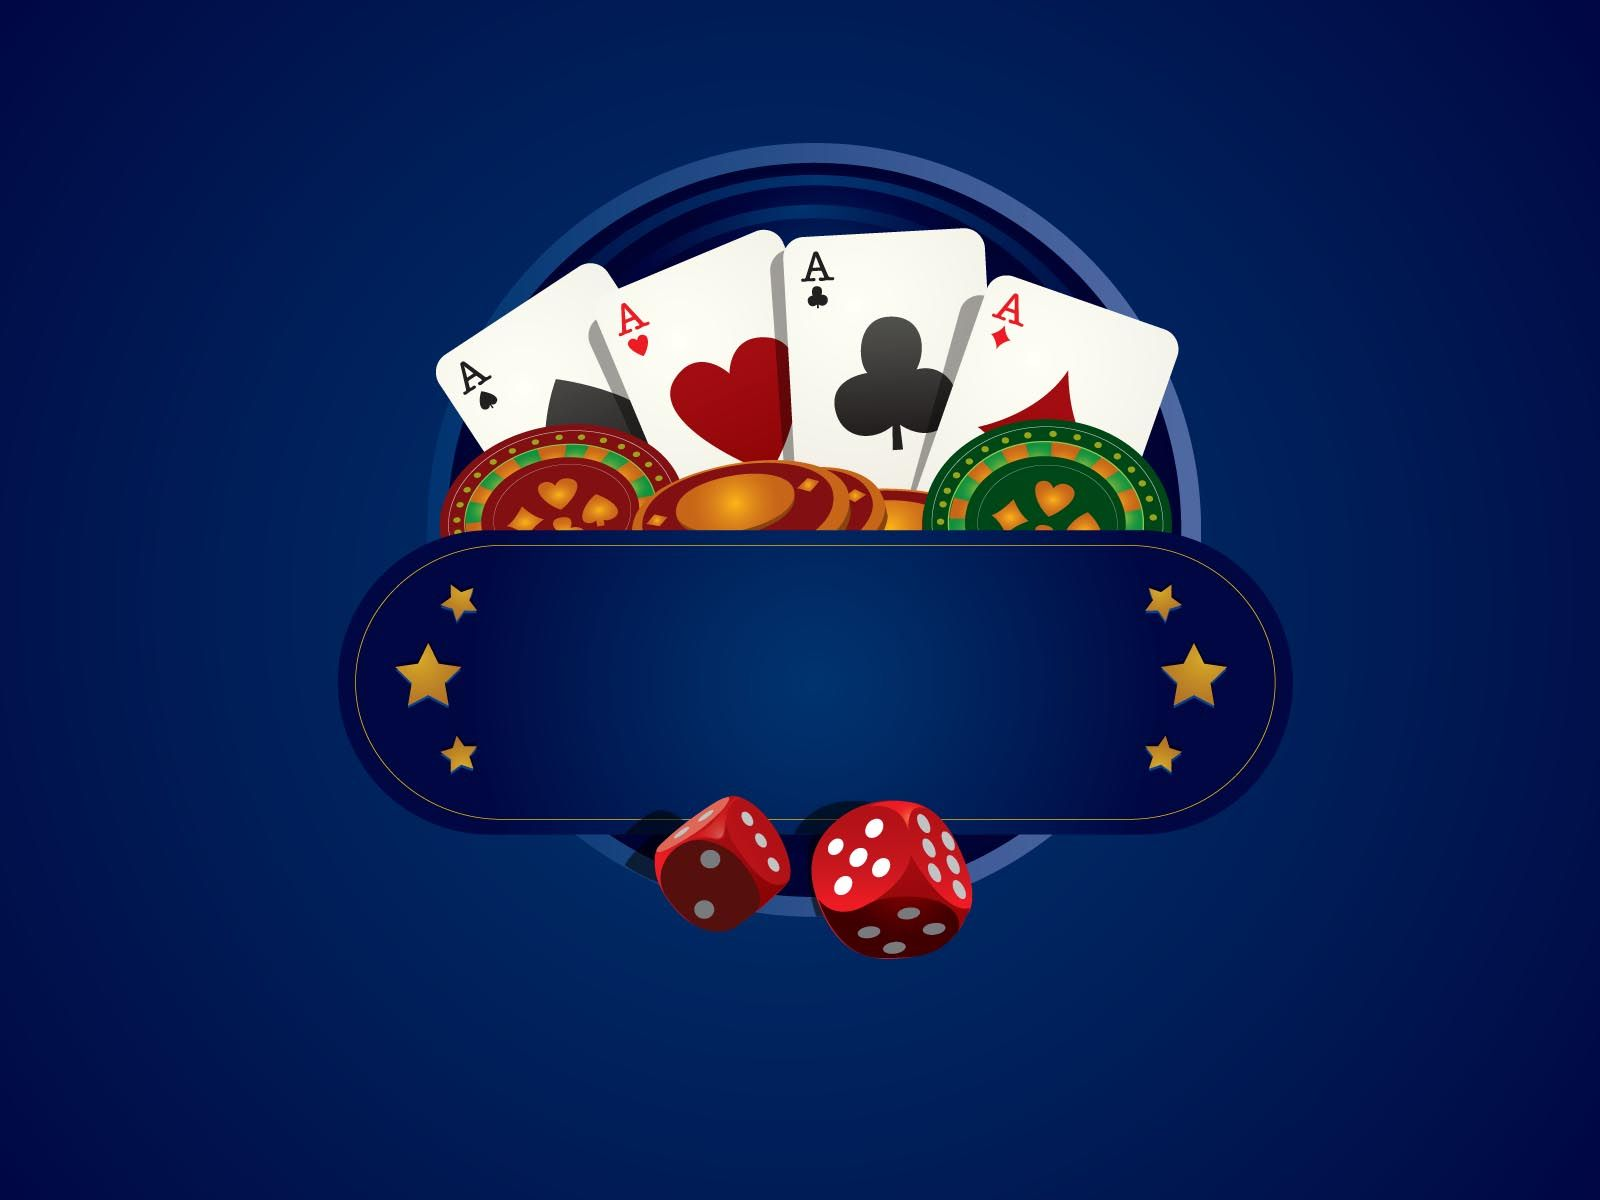 Things You Should Know About Online Gambling Sites